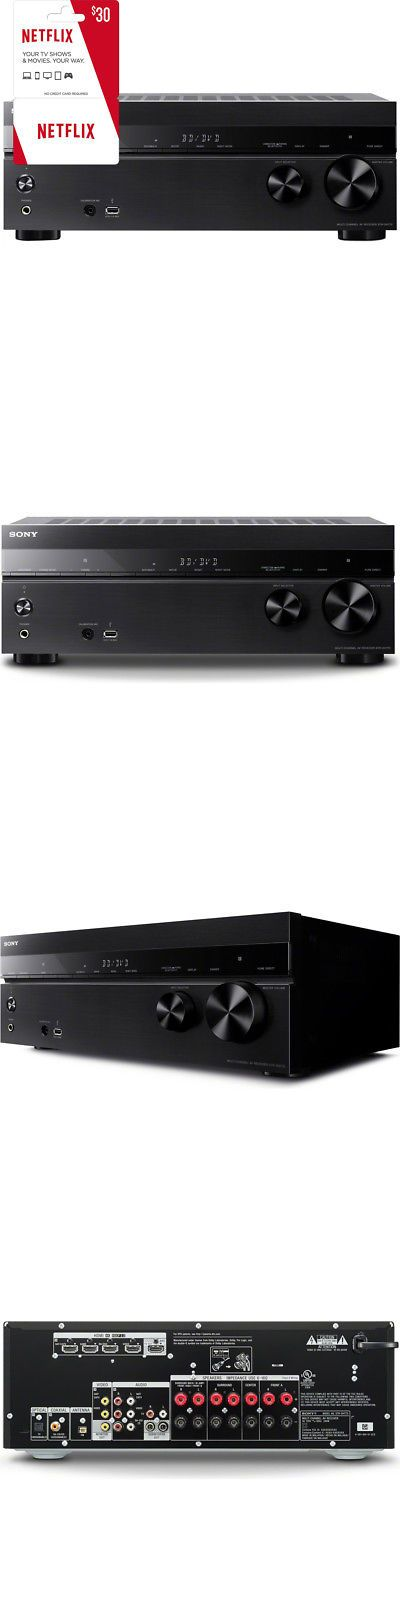 Stereo Receivers: Sony Str-Dh770 7.2 Channel 145 W 4K Home Theater Av Rec + $30 Netflix Gift Card -> BUY IT NOW ONLY: $298 on eBay!